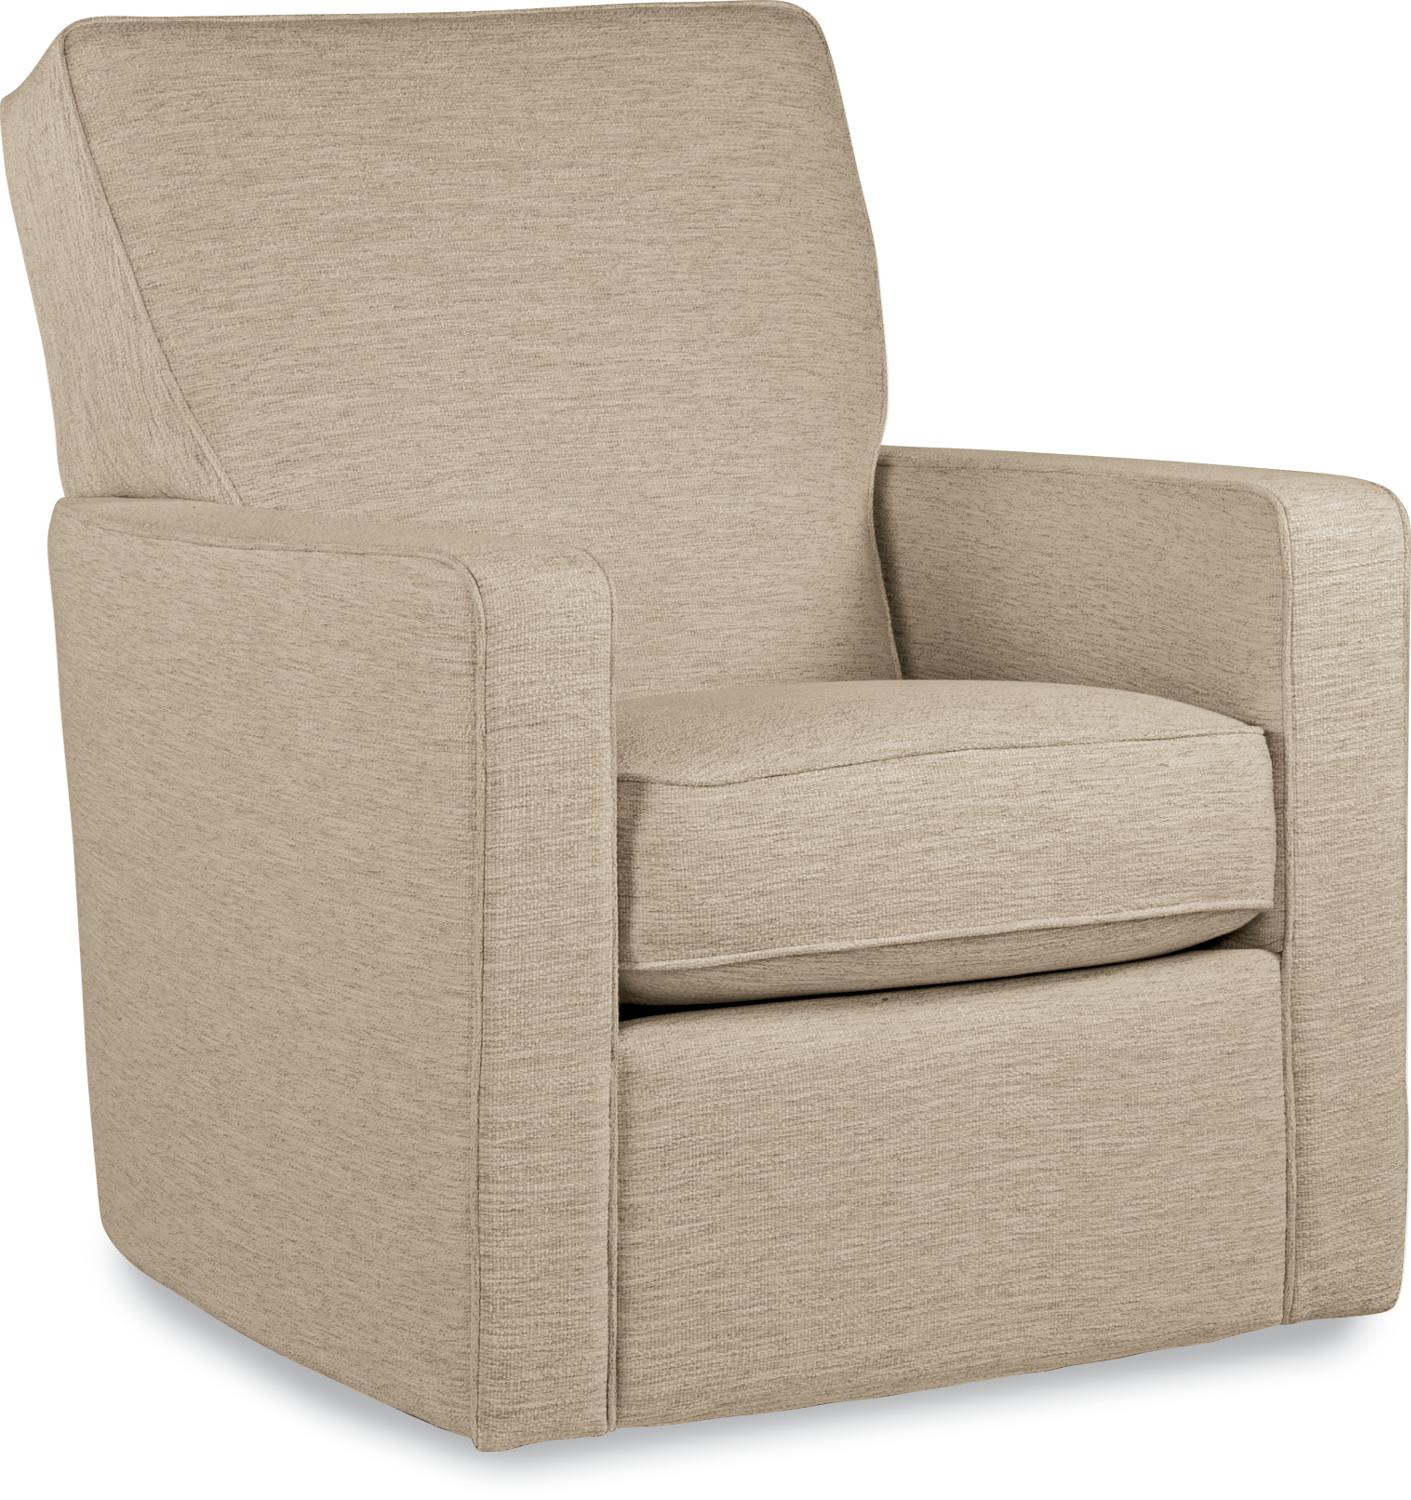 Chairs midtown contemporary swivel glider chair by la z boy wolf